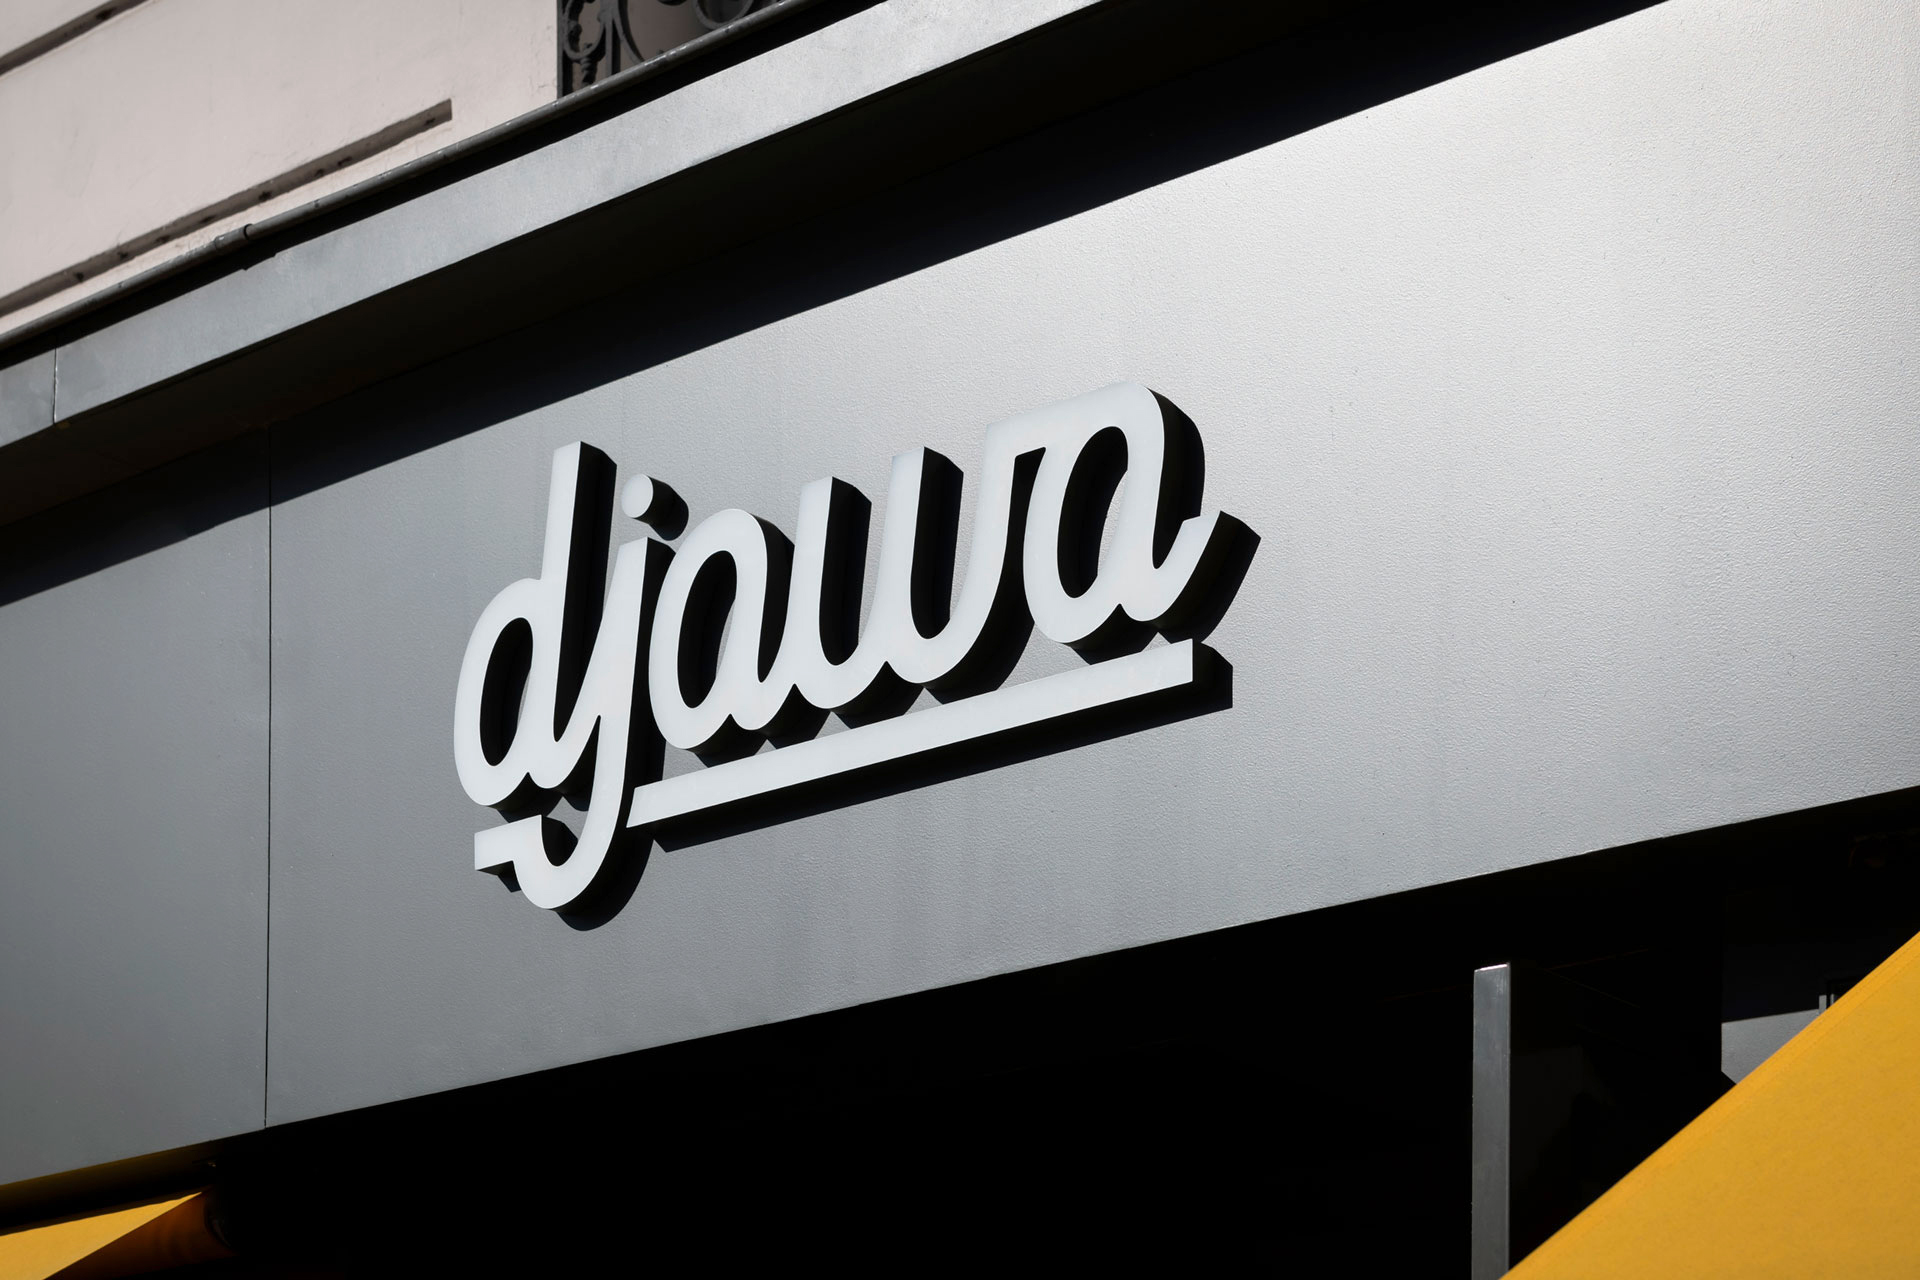 Djawa - restaurant - interior architecture - Paris - neon sign - facade